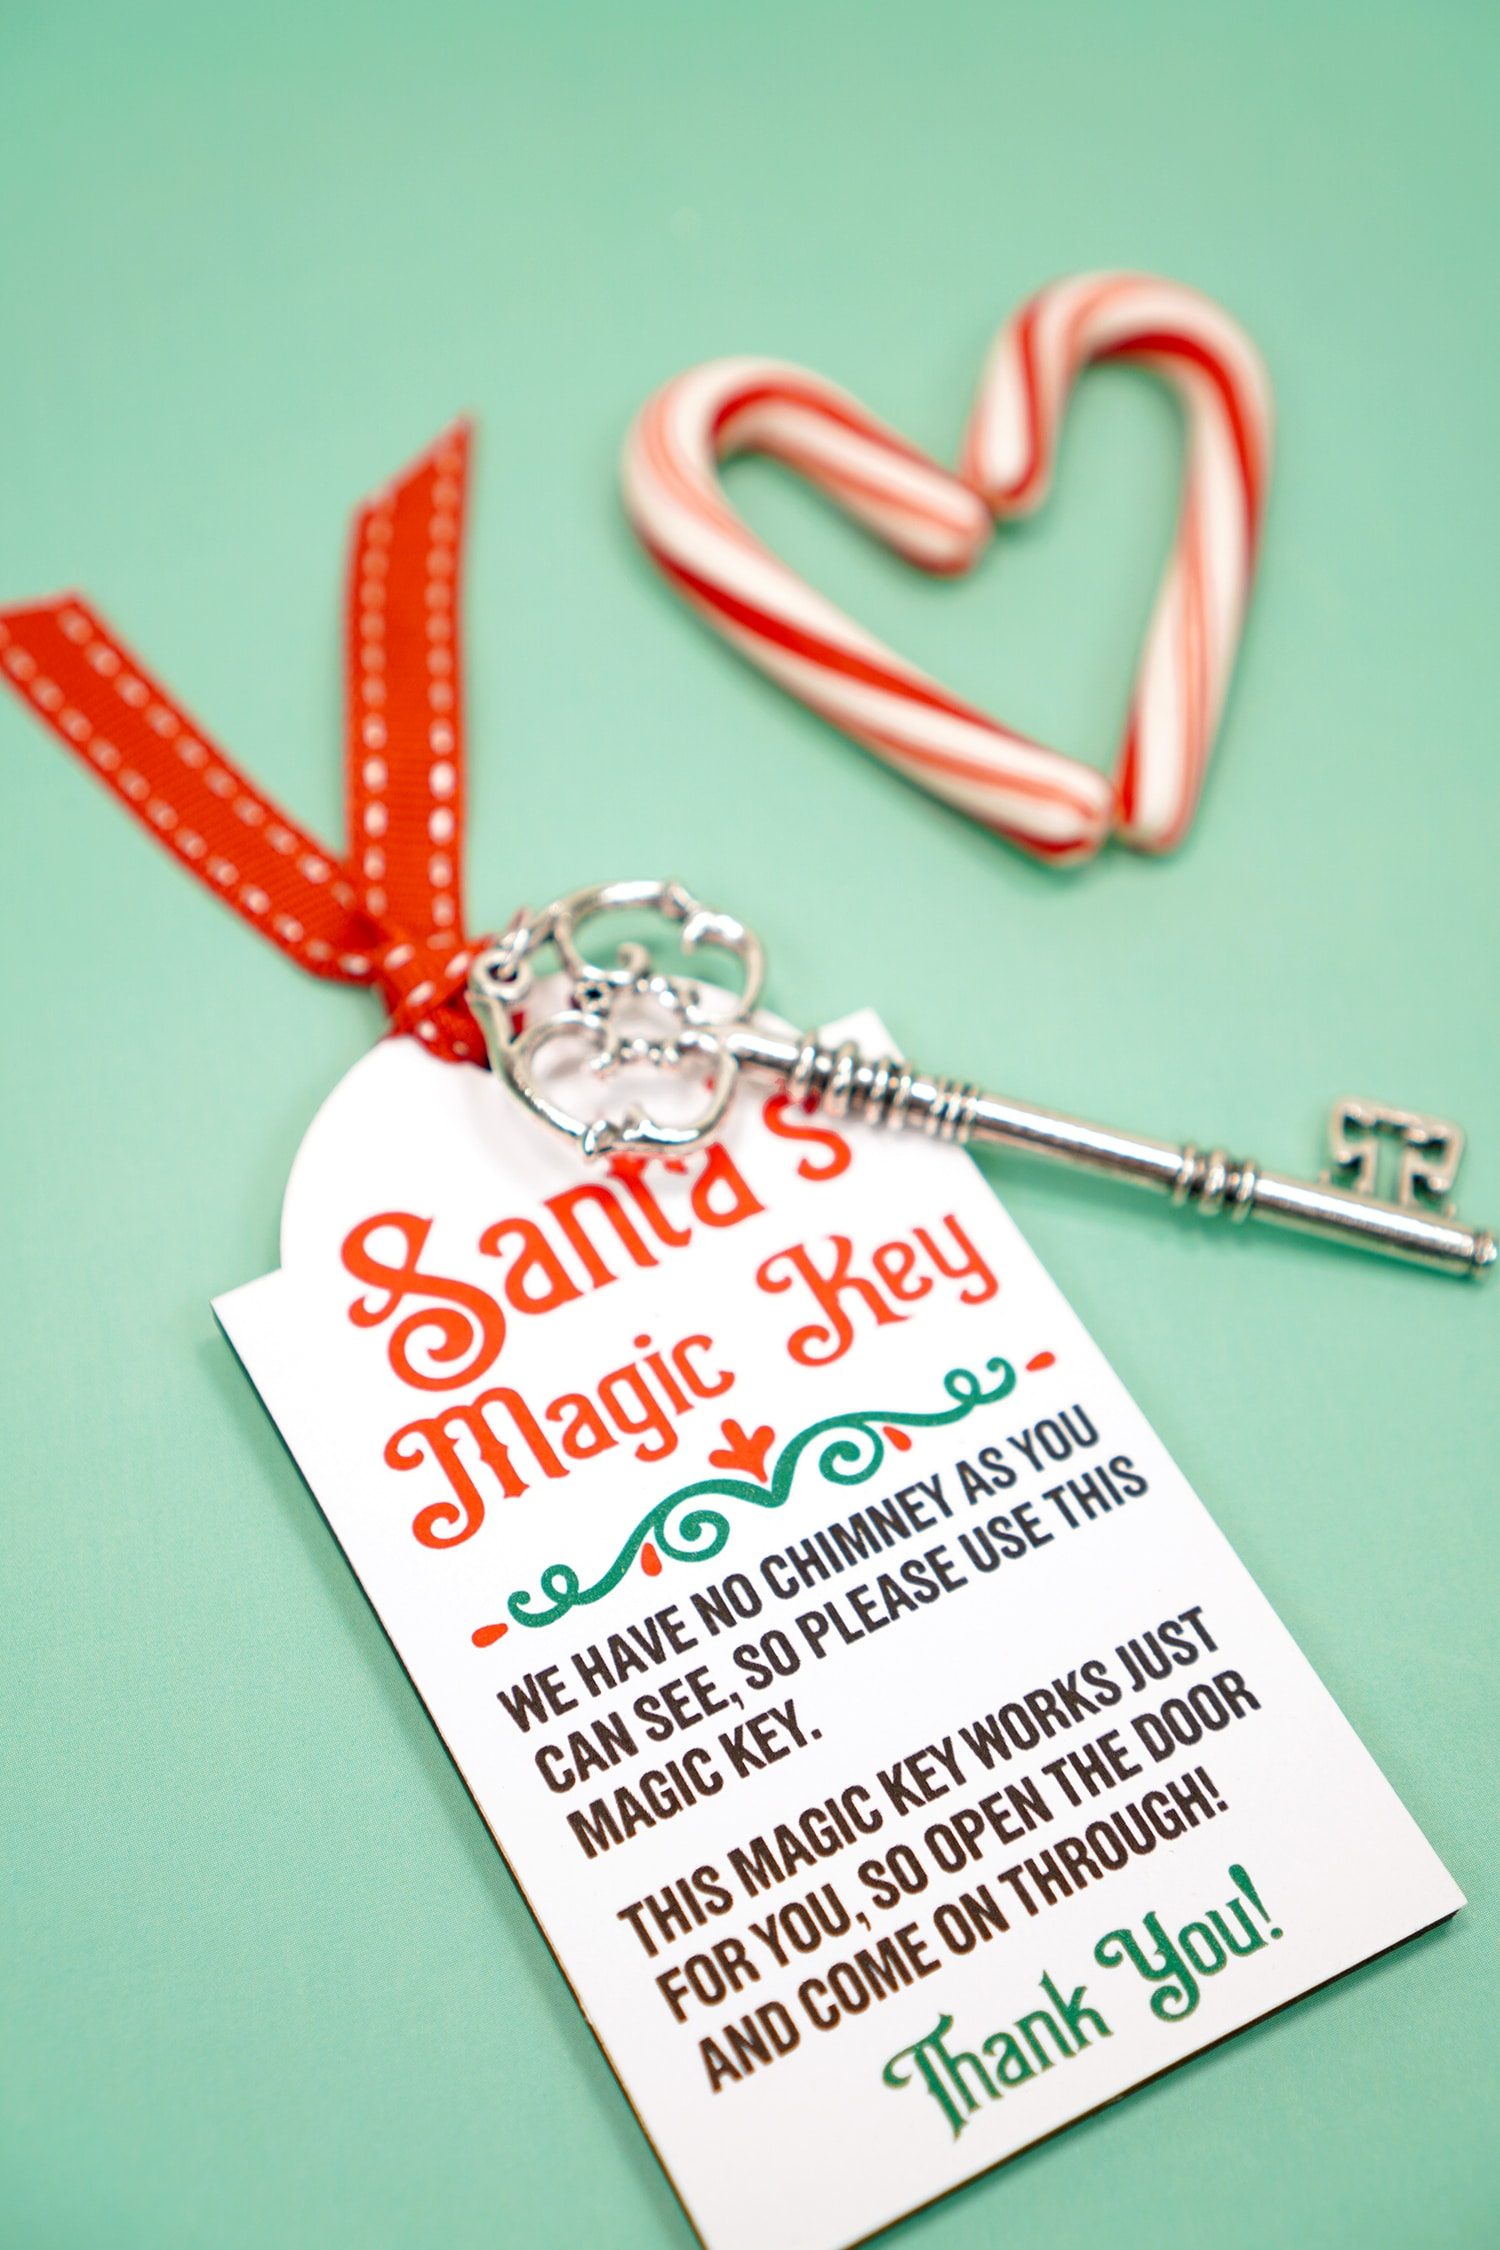 Santa's Magic Key printable tag with red ribbon and silver key on a mint green background with candy canes